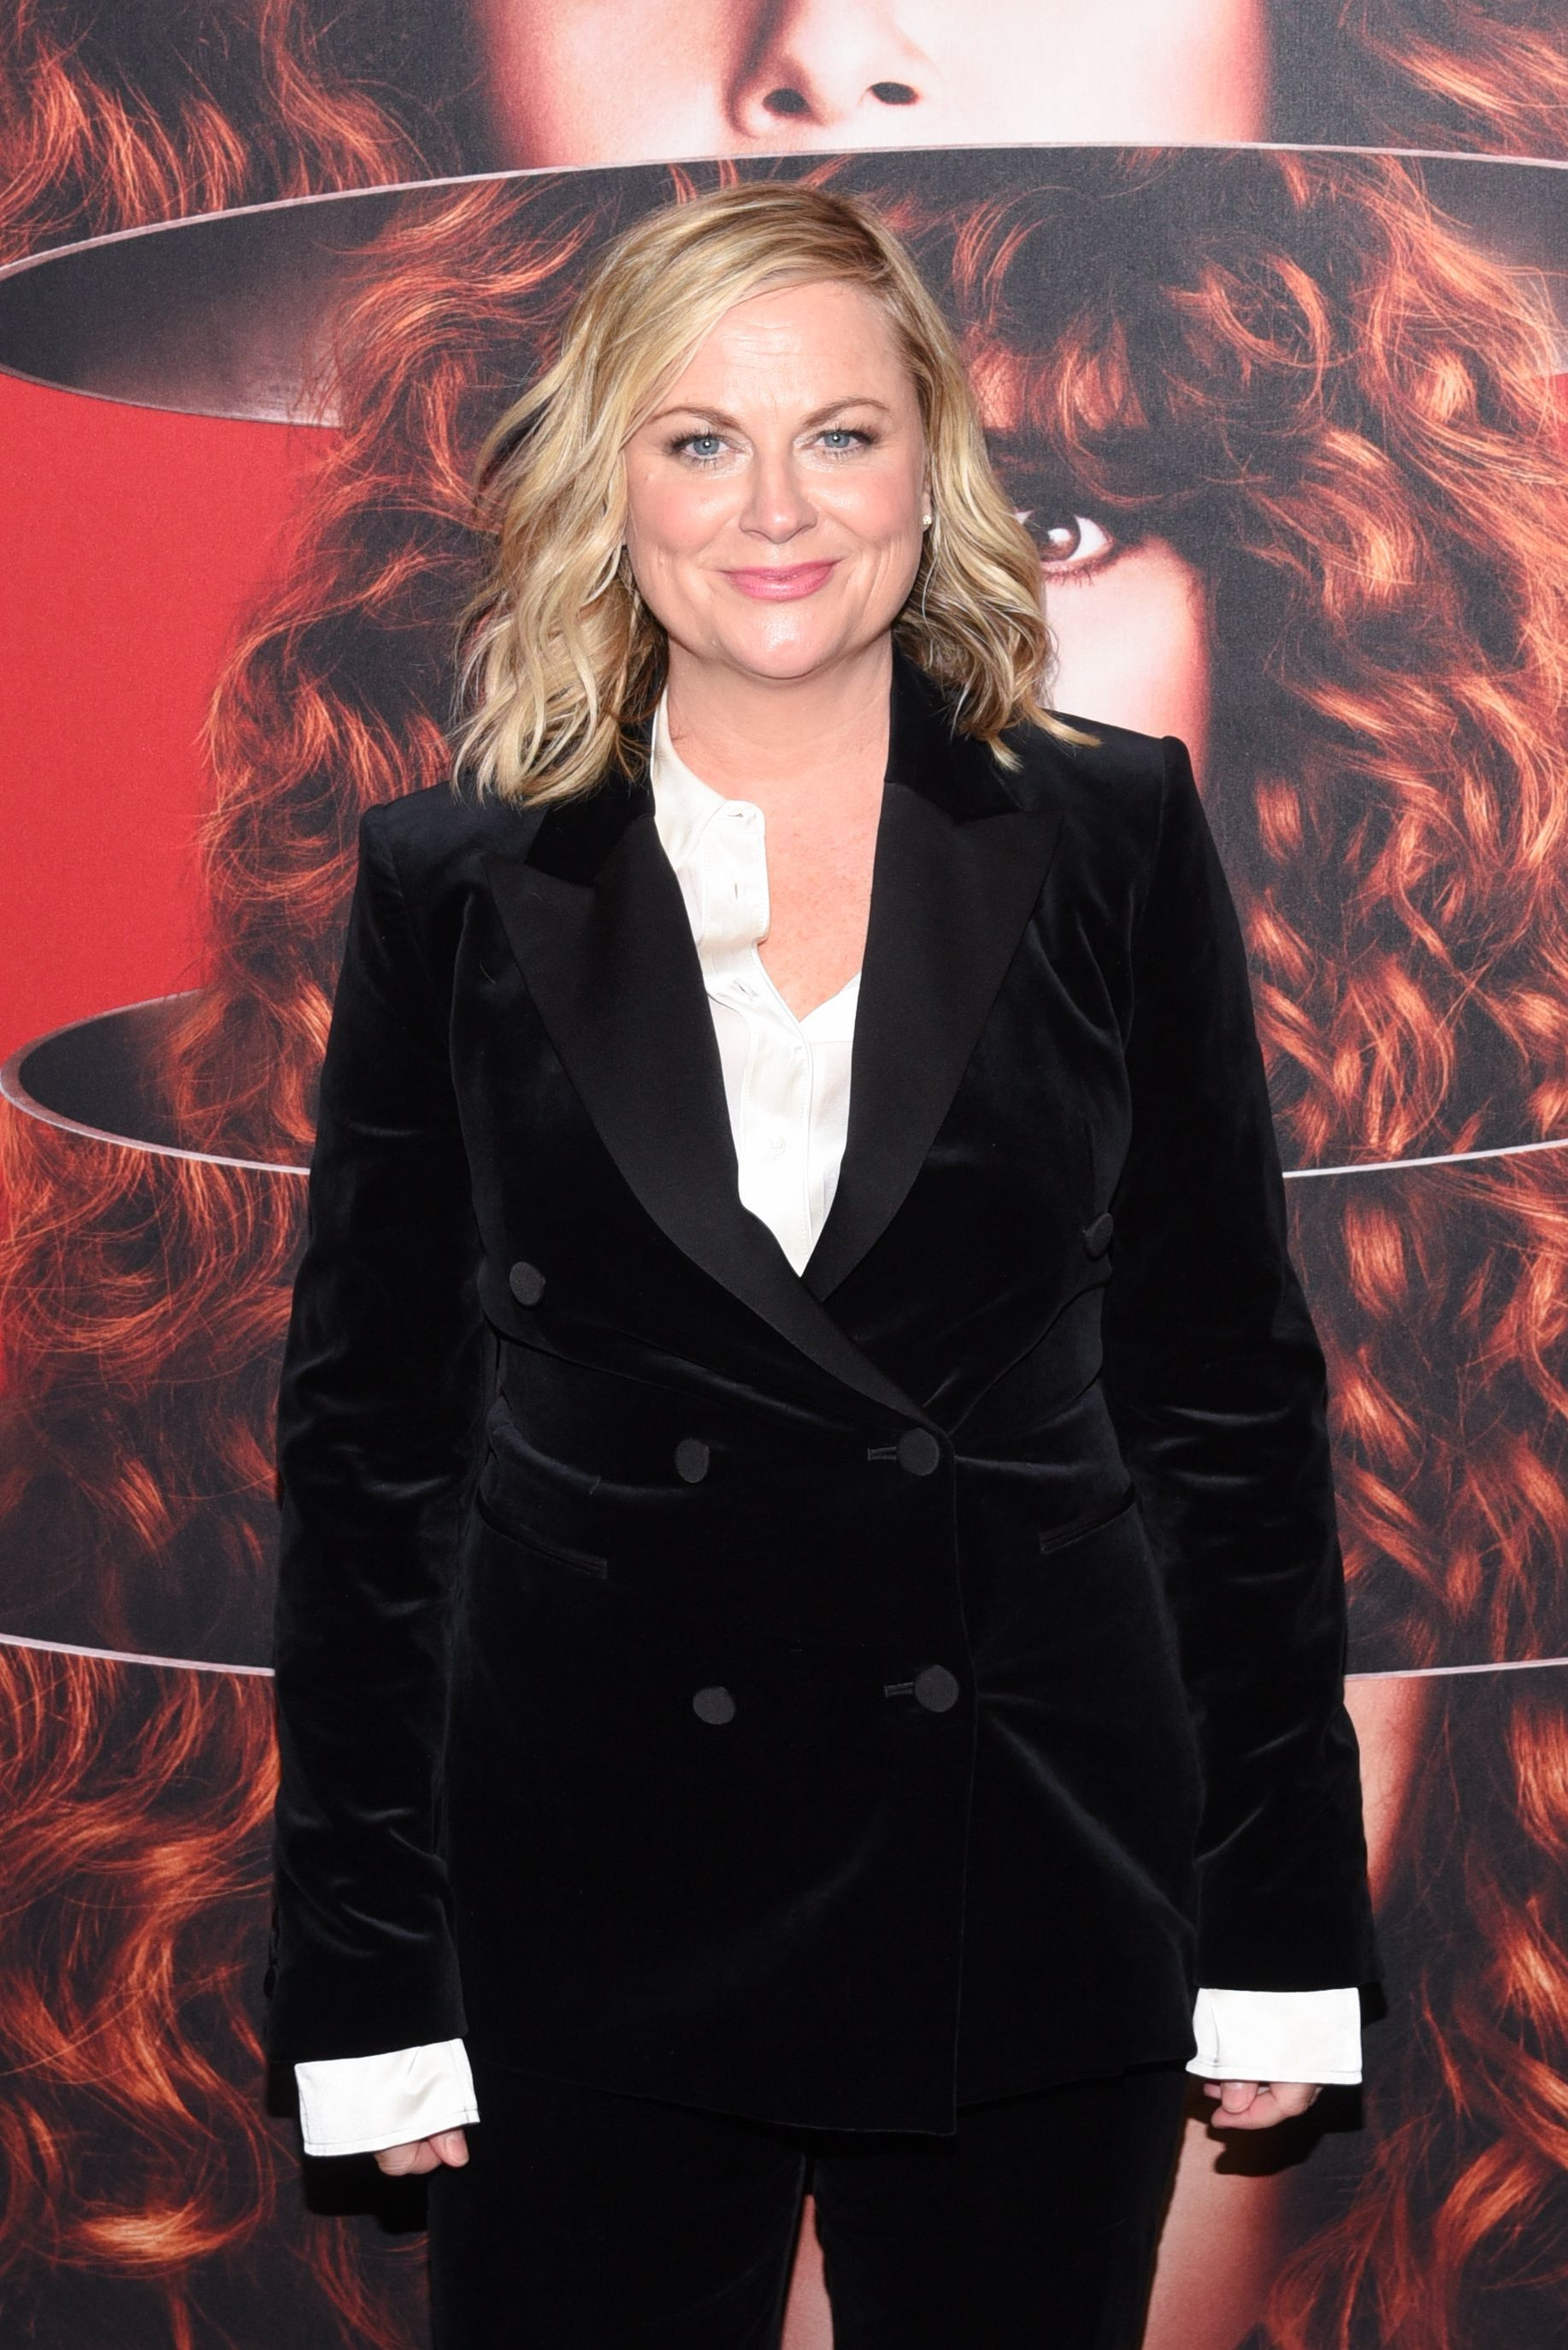 """Amy Poehler attends the """"Russian Doll"""" TV show season premiere in New York City on Jan. 23, 2019."""